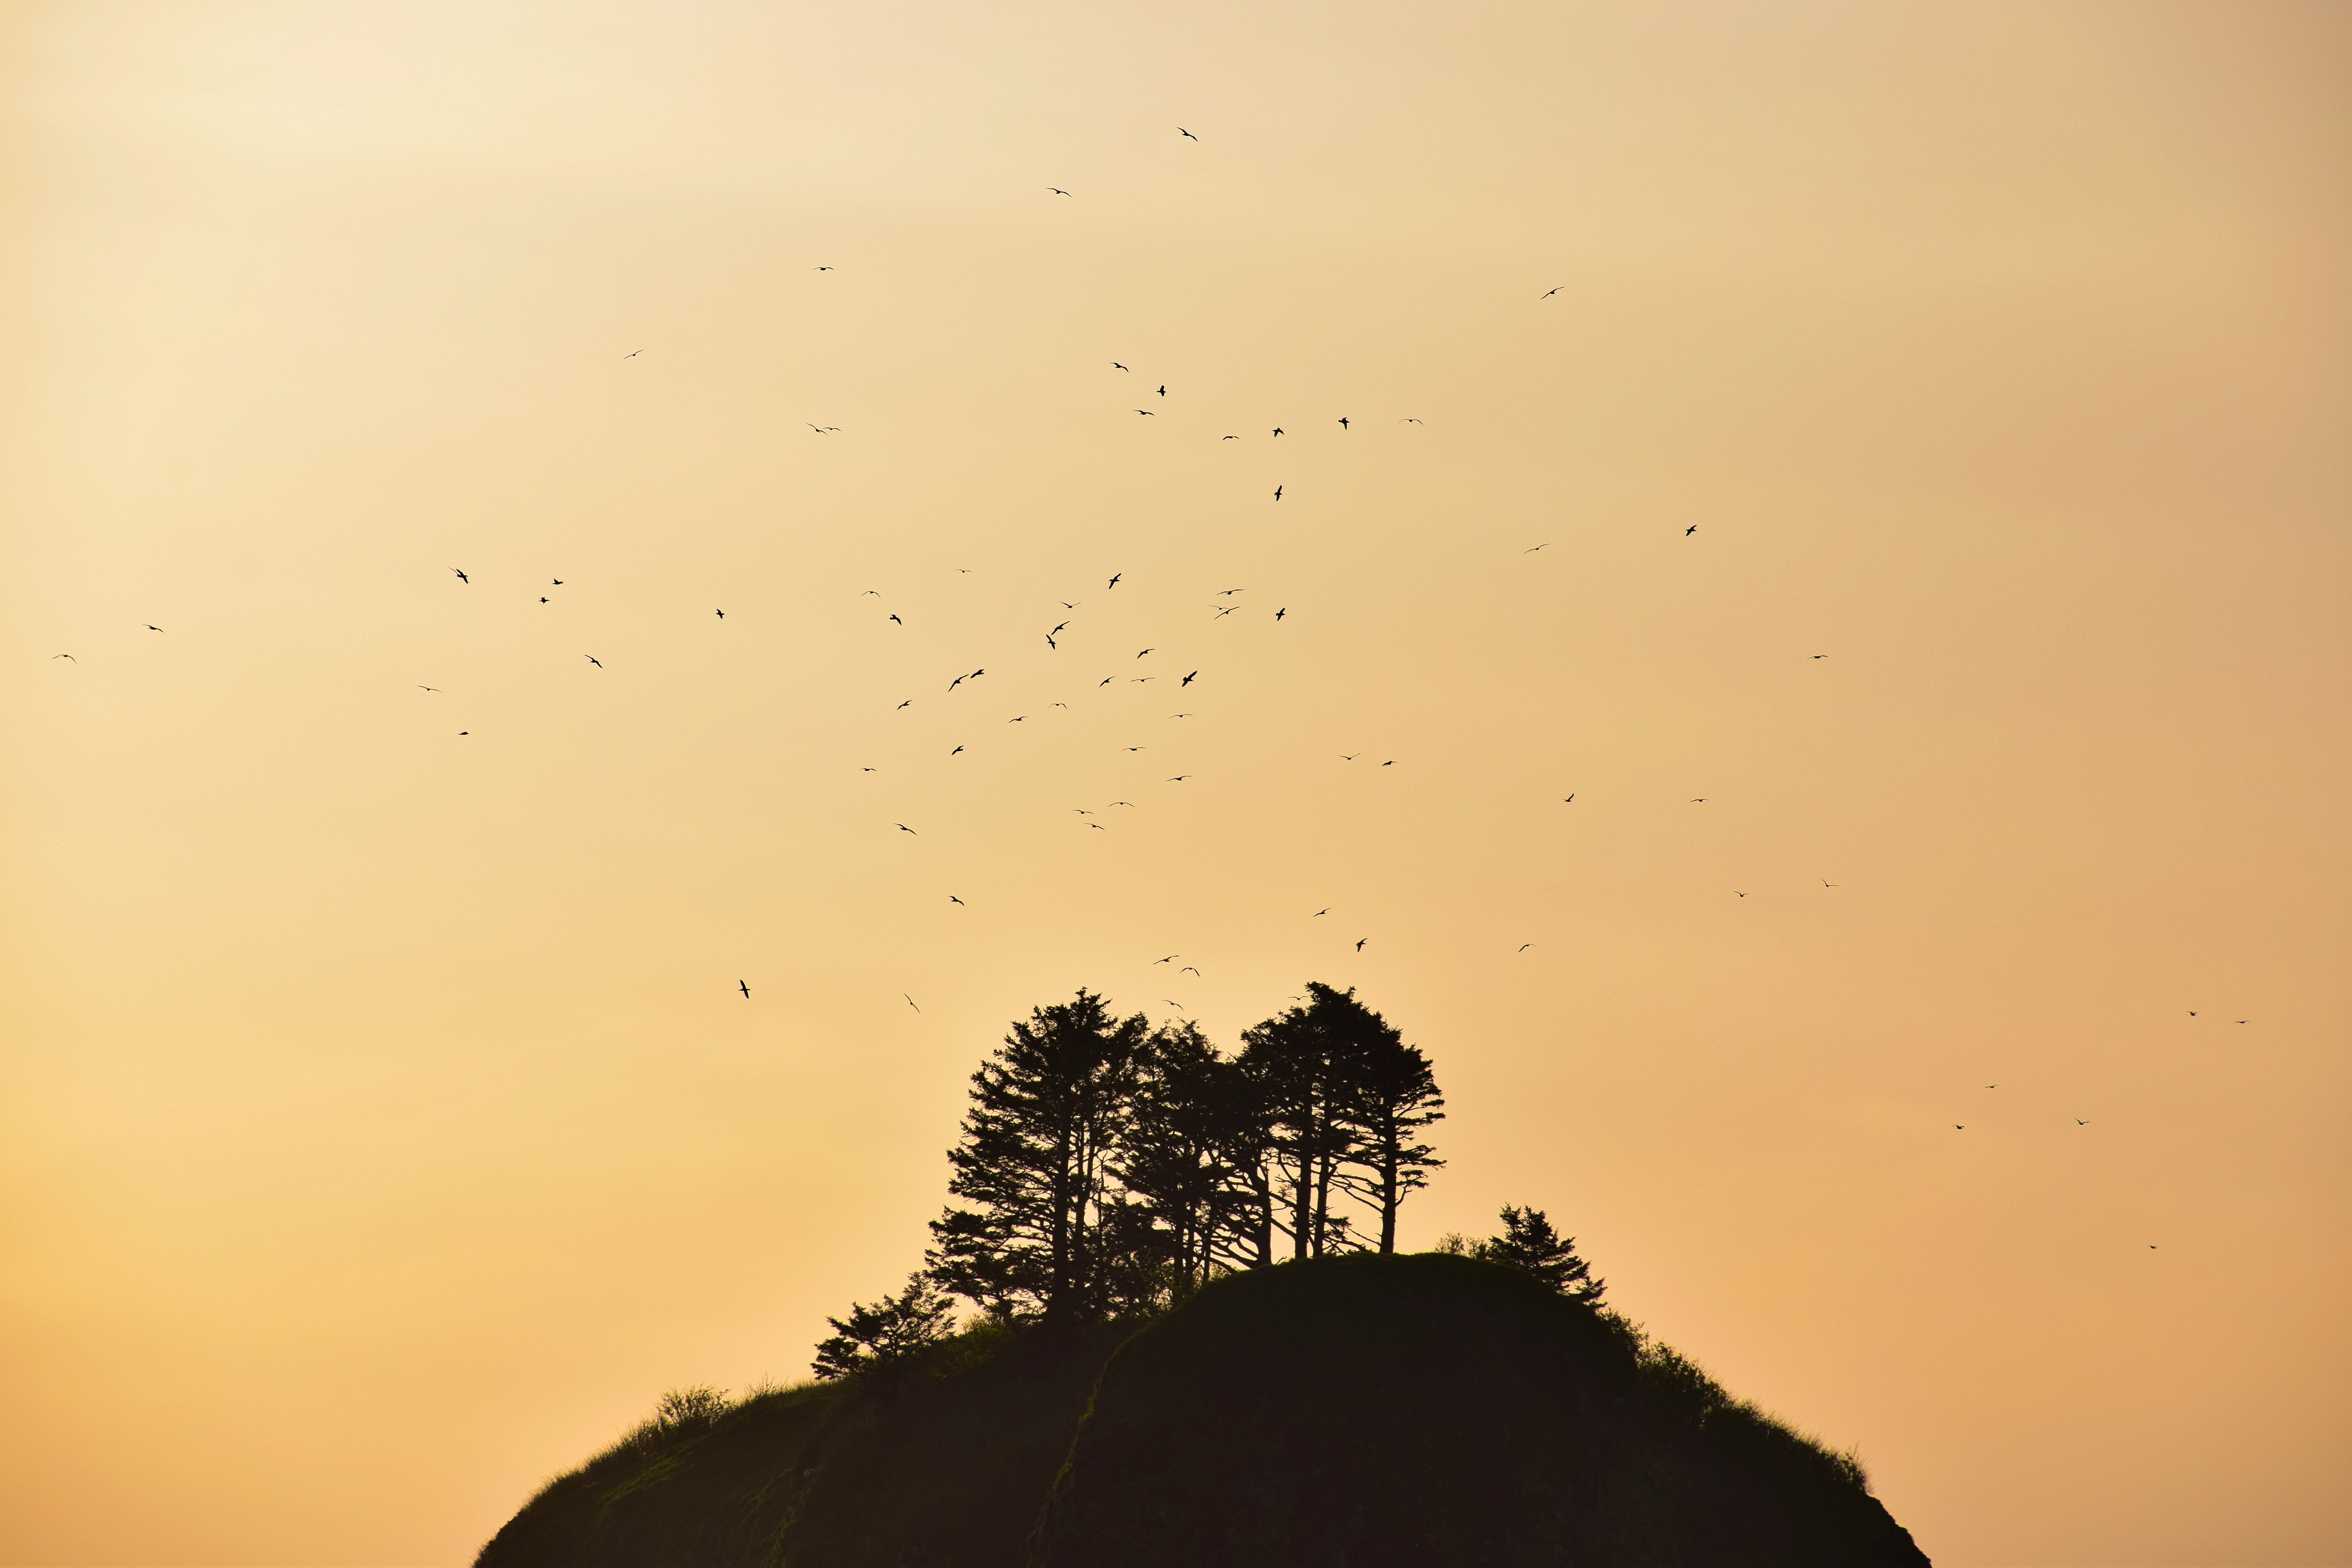 silhouette of trees on hill